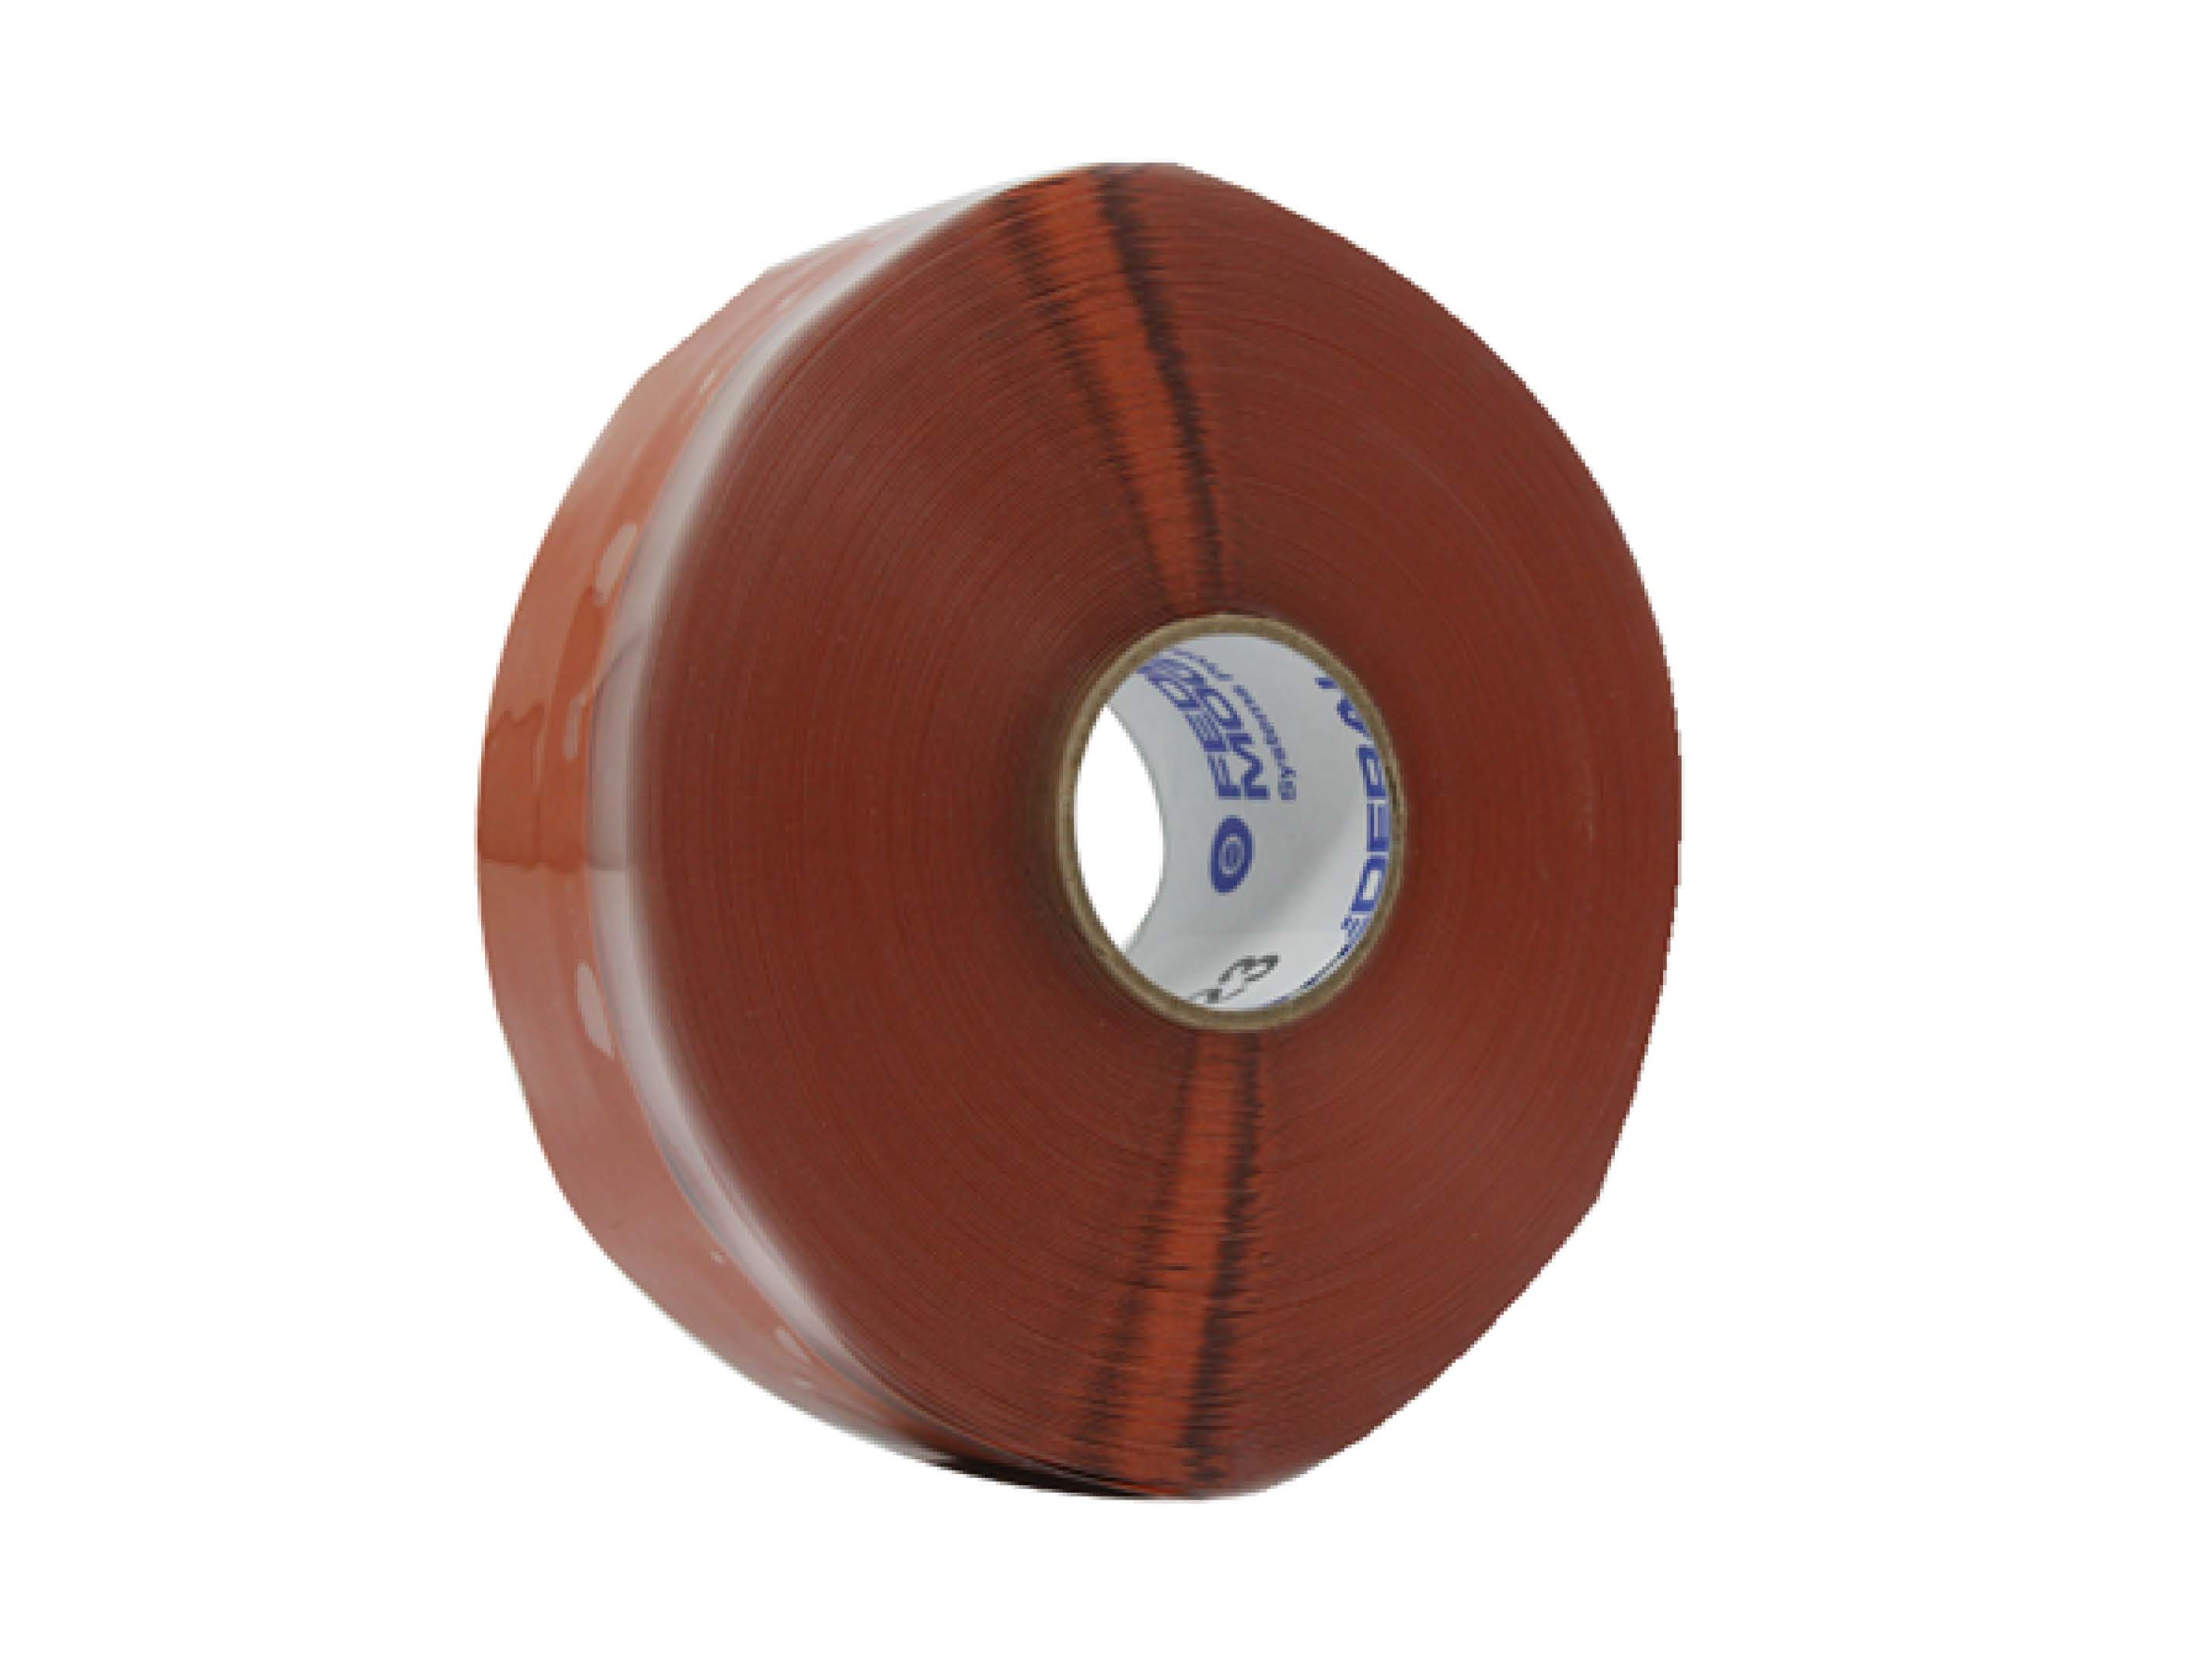 FEDERAL MOGUL 68 N RED SILICONE TAPE